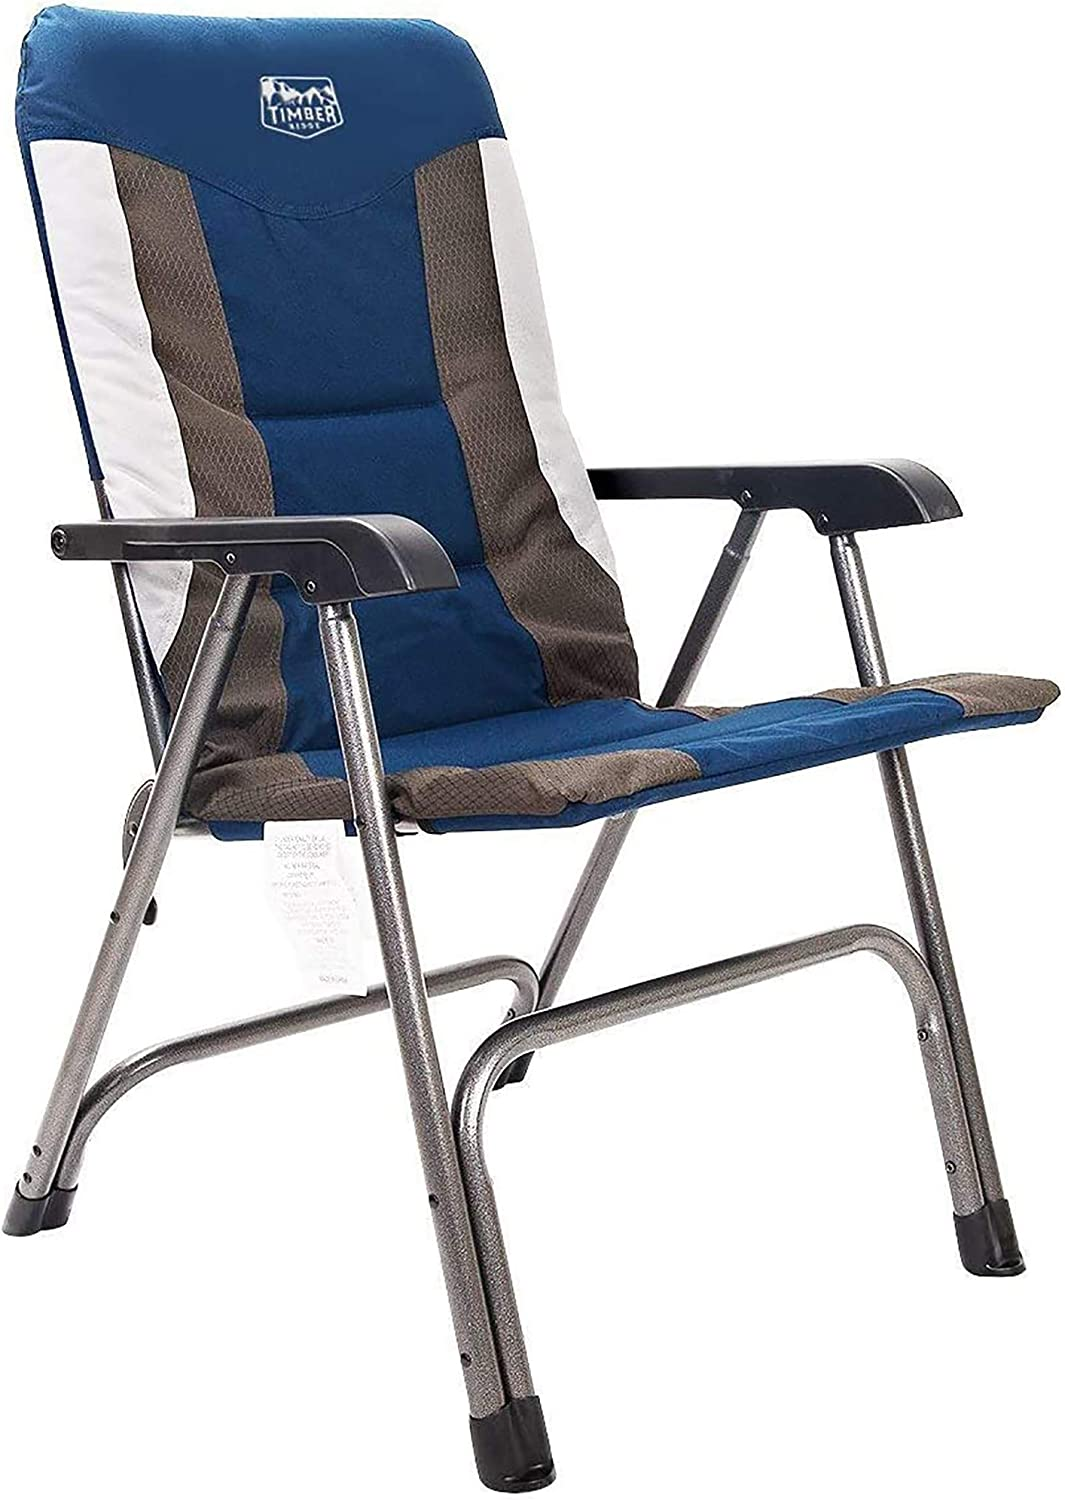 Timber Ridge Camping Folding Chair High Back Portable With Carry Bag Arm Chair Easy Set Up Padded For Outdoor Lawn Garden Lightweight Aluminum Frame Support 300lbs Sports Outdoors